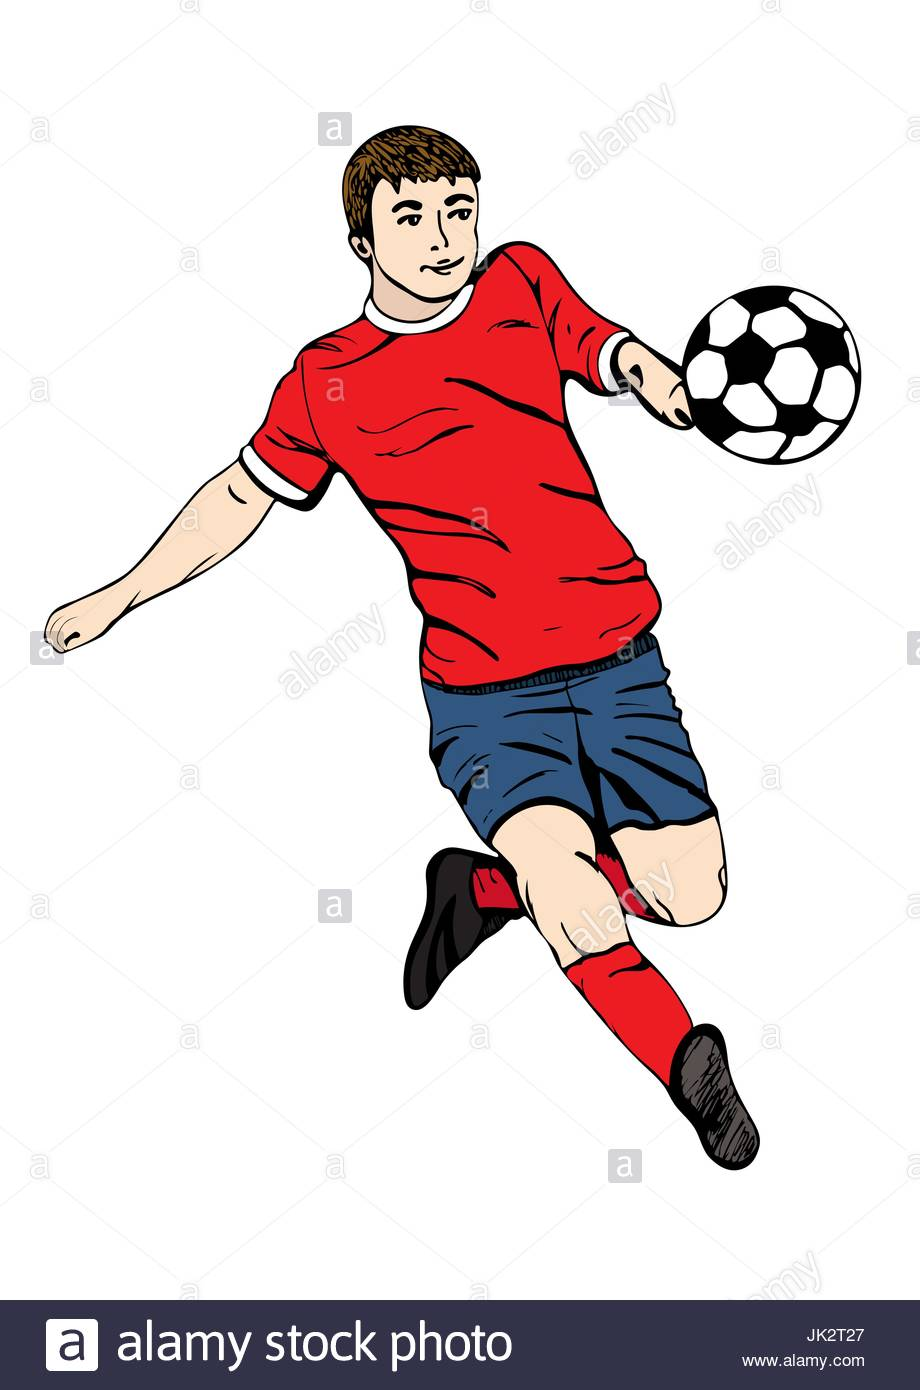 920x1390 Footballer With Ball, Vector Hand Drawing. Football Player In